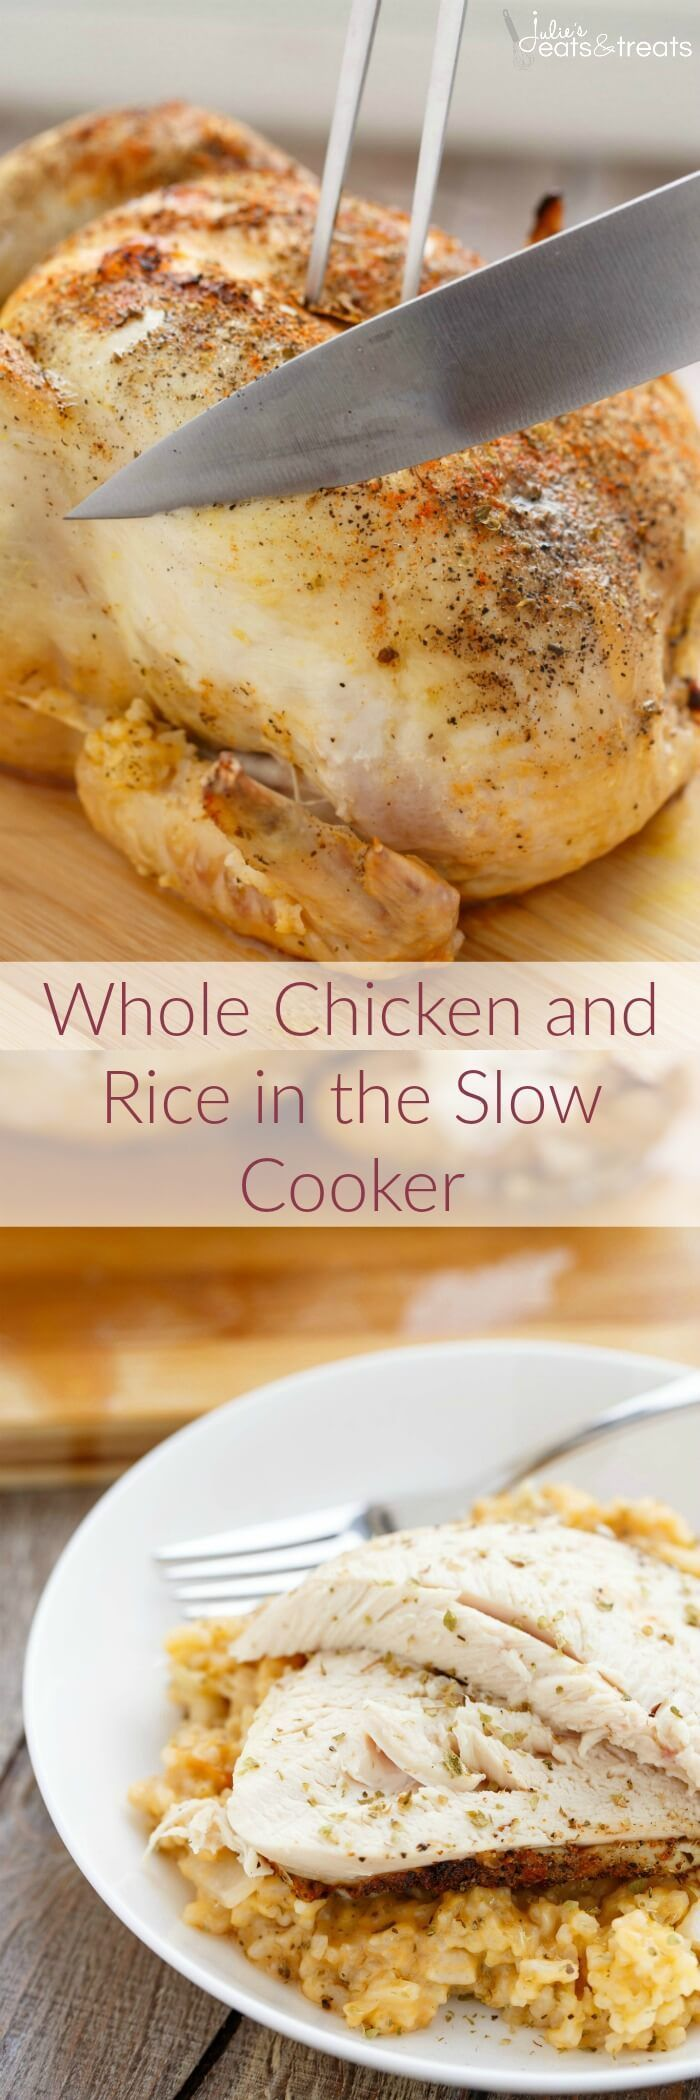 Crock Pot Chicken And Rice Dinner  Whole Chicken And Rice -4479